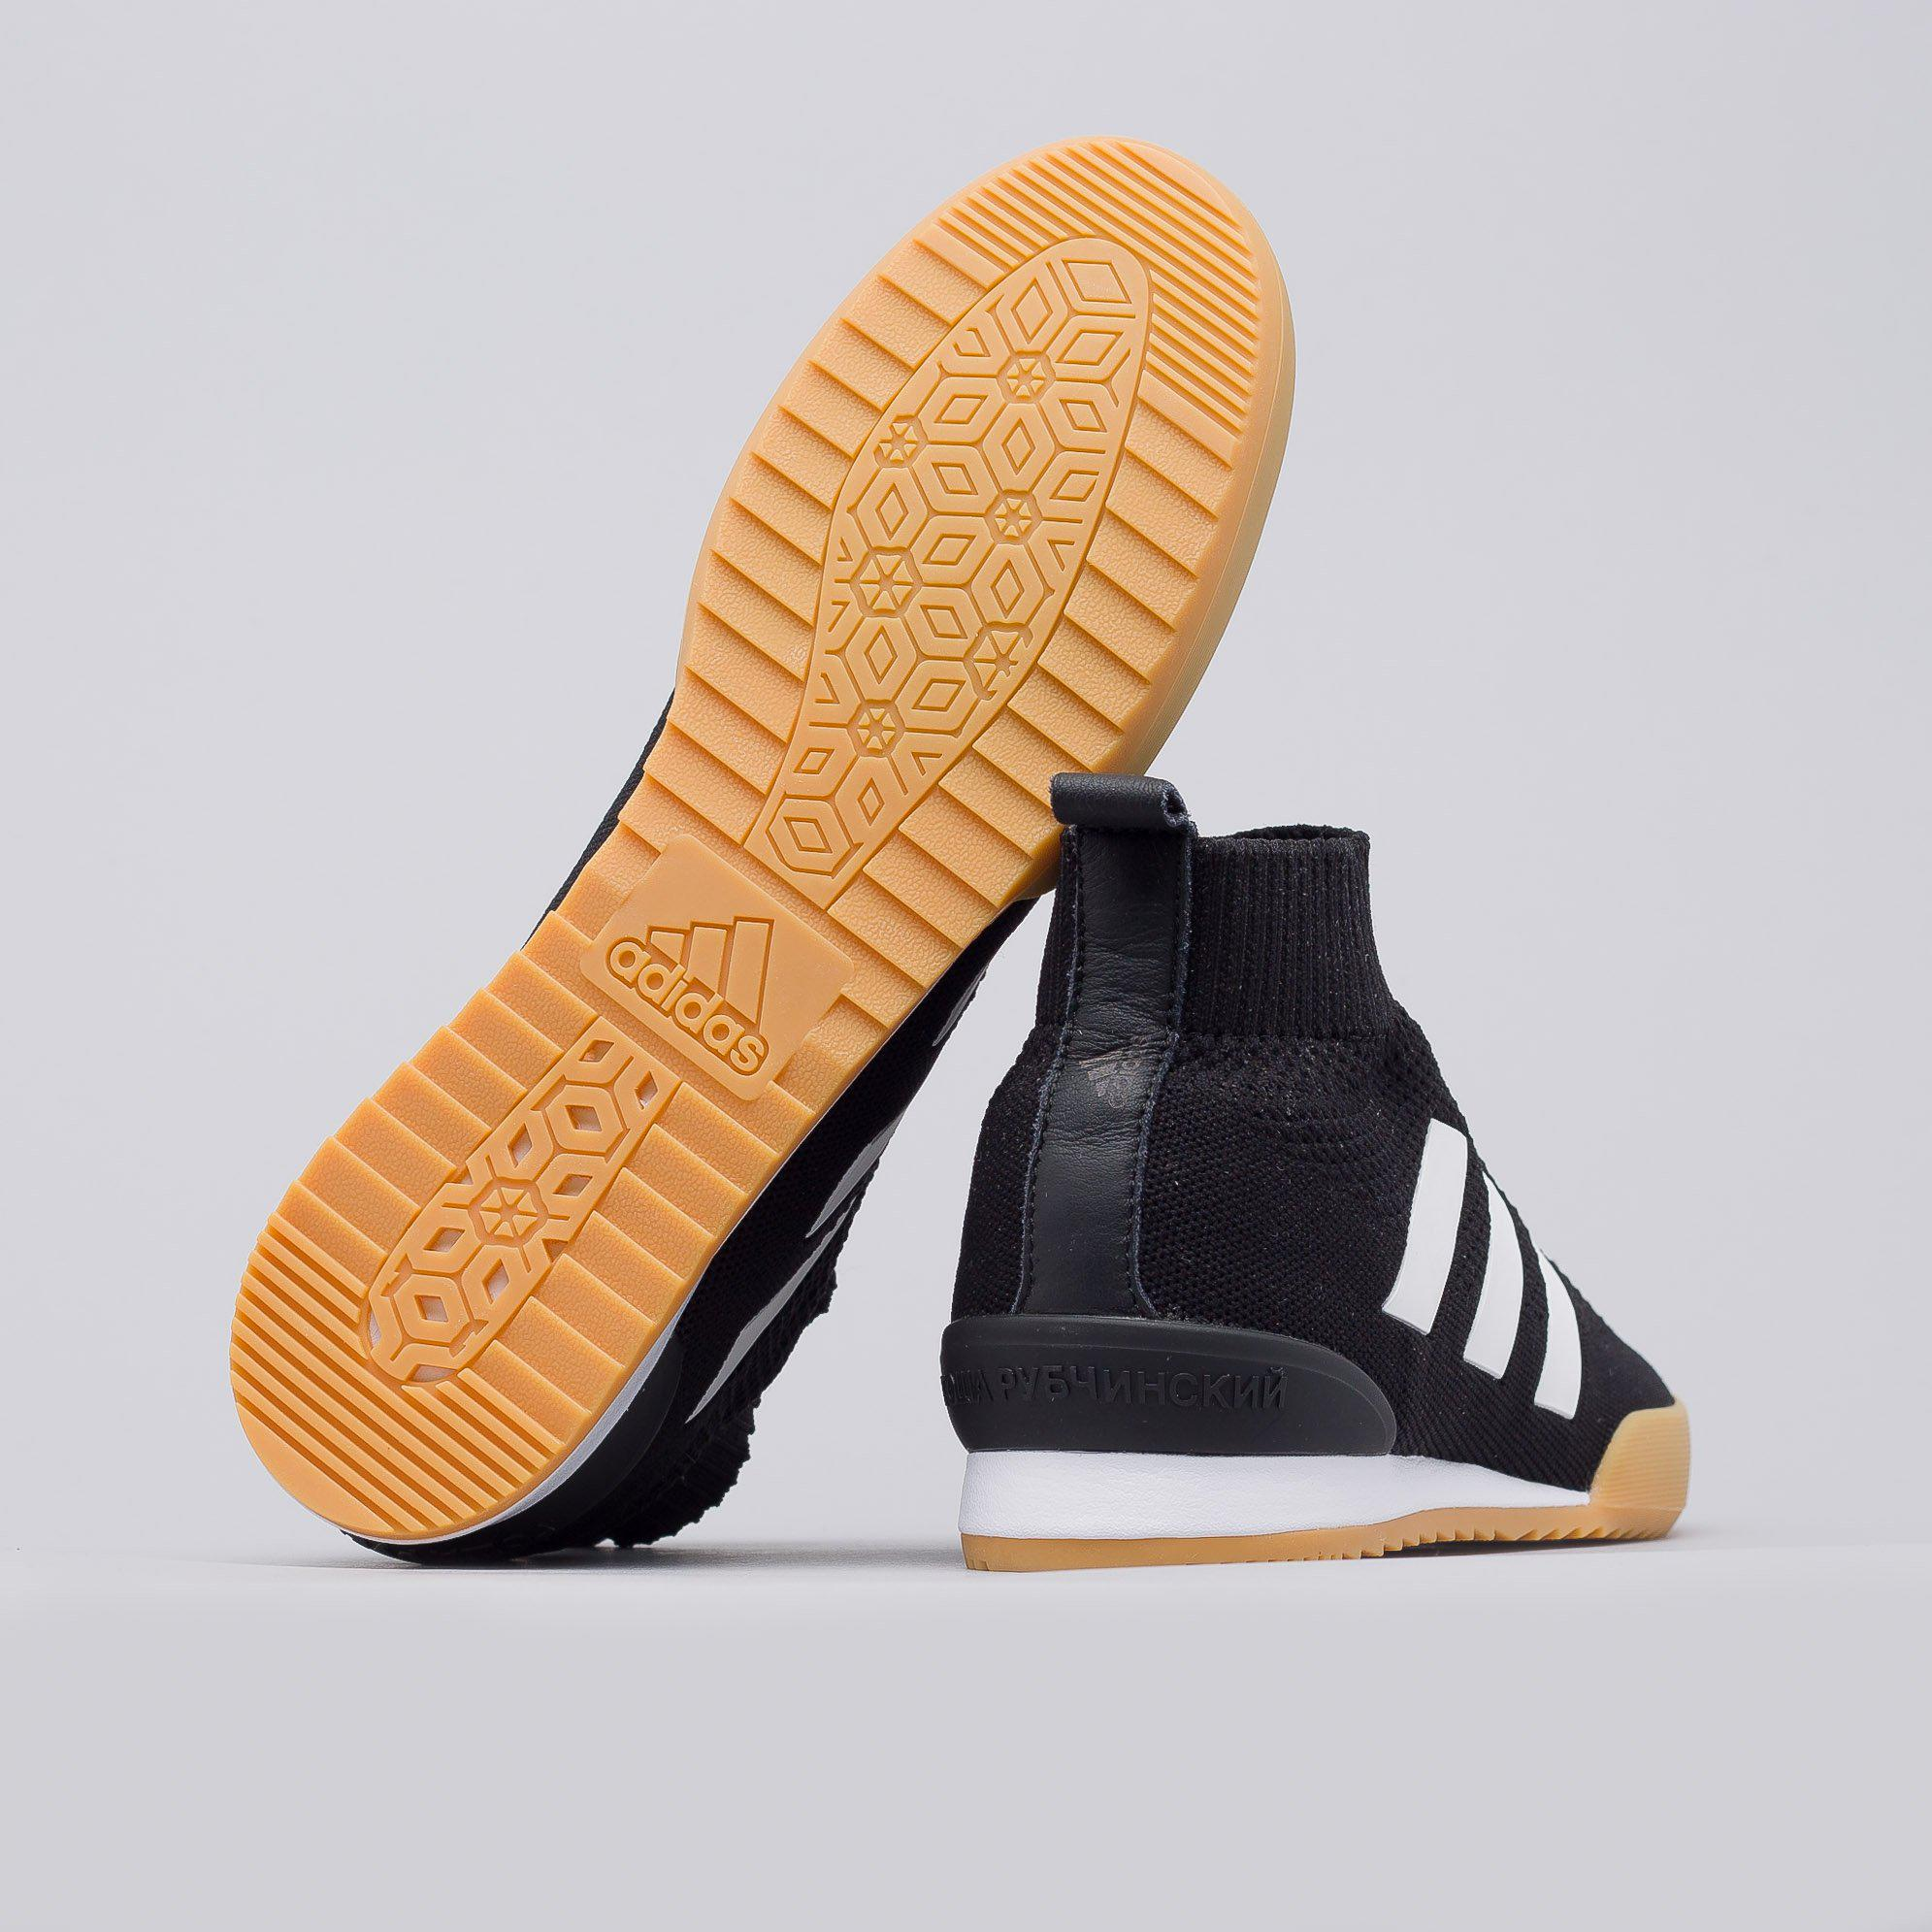 san francisco c0c73 aa1c7 Gosha Rubchinskiy X Adidas Ace Super Shoes In Black for men